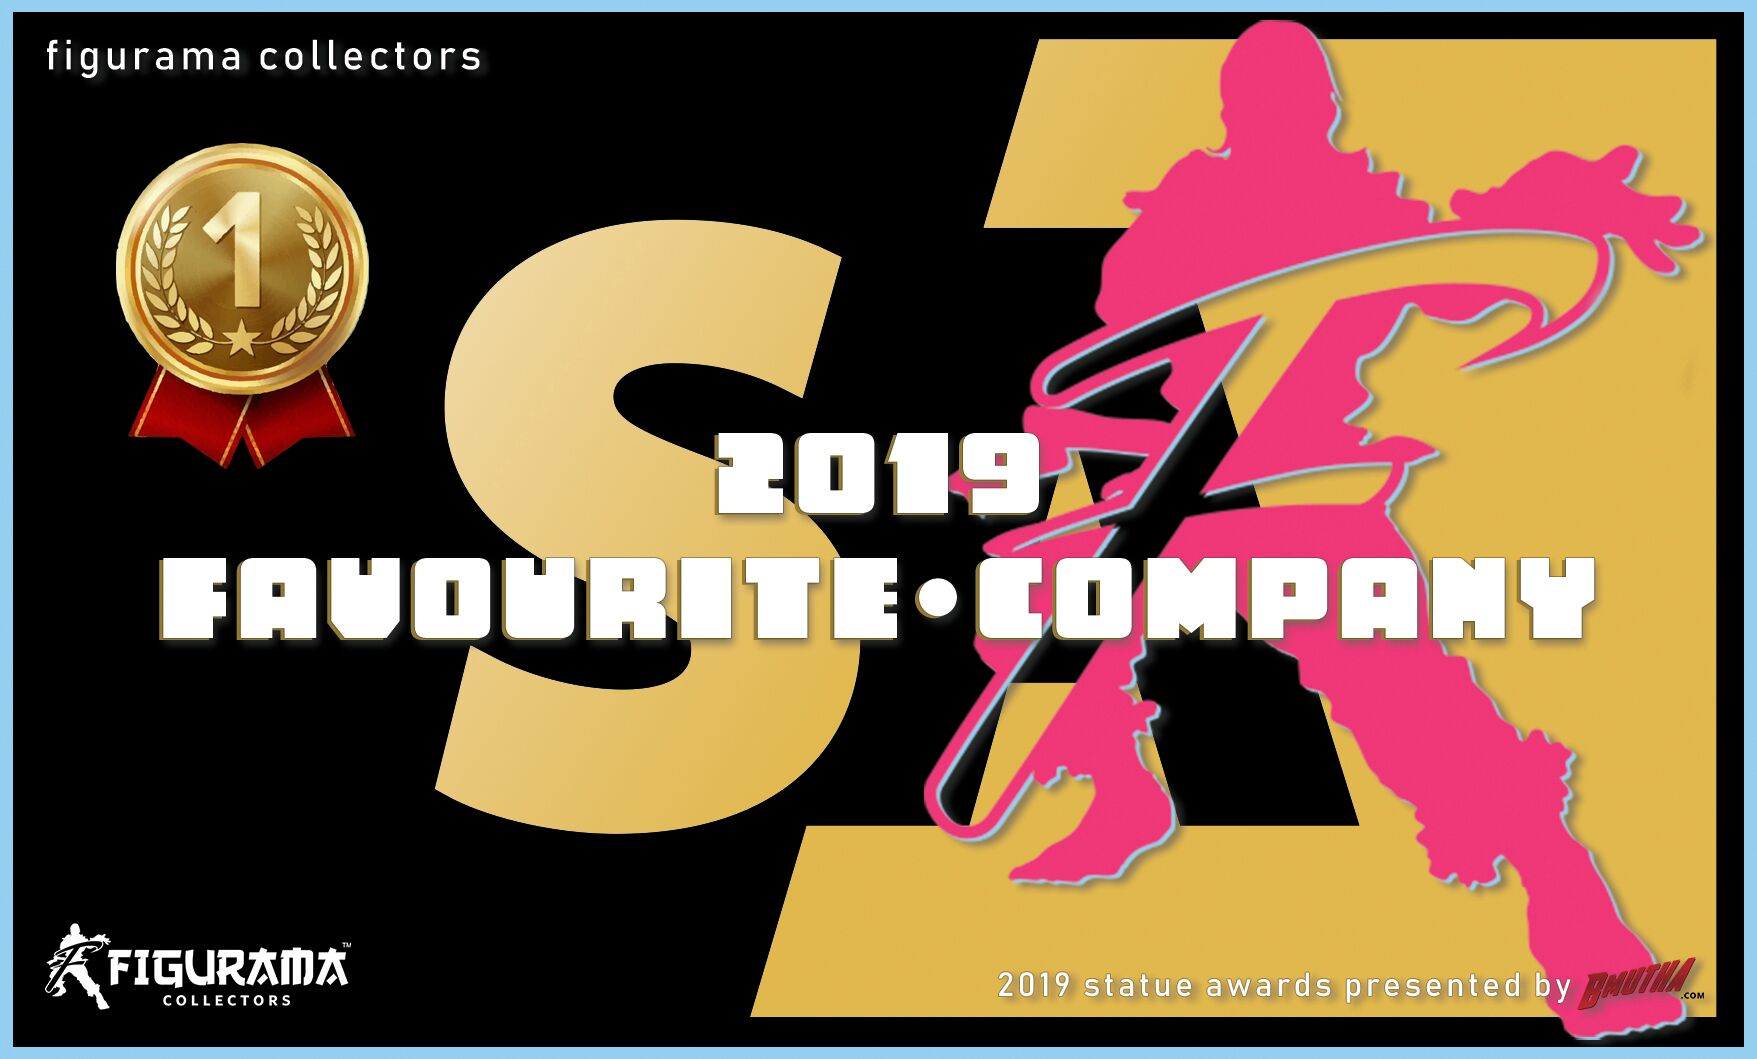 BMUTHA Statue Awards Favorite Company 2019: Figurama Collectors